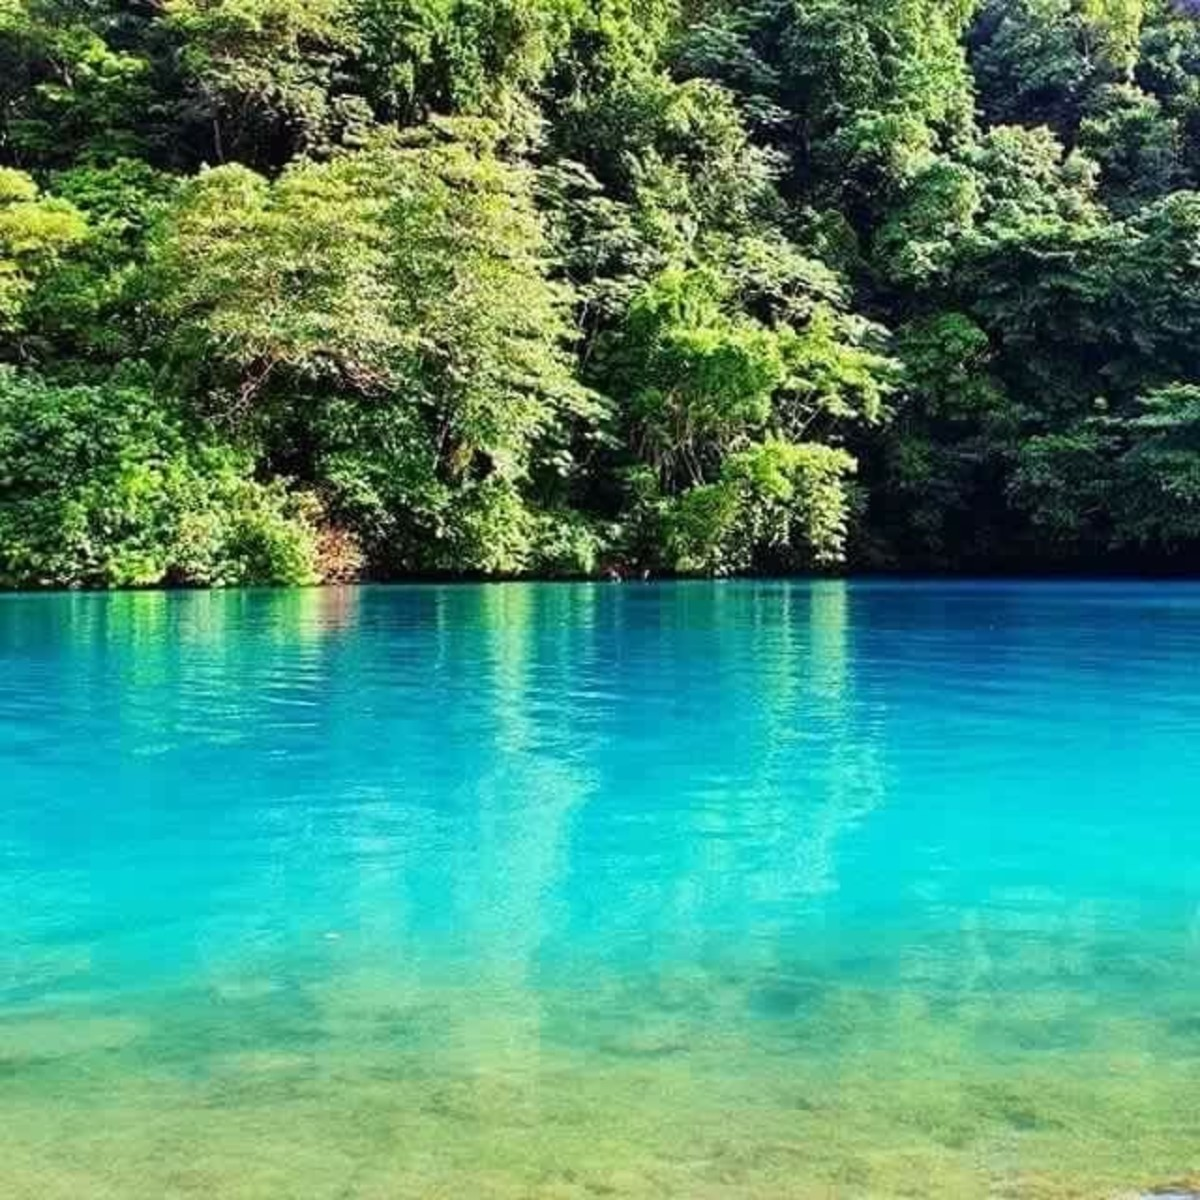 The serene, shimmery Blue Lagoon where the Blue Lagoon movie was filmed is a must see to Jamaica.